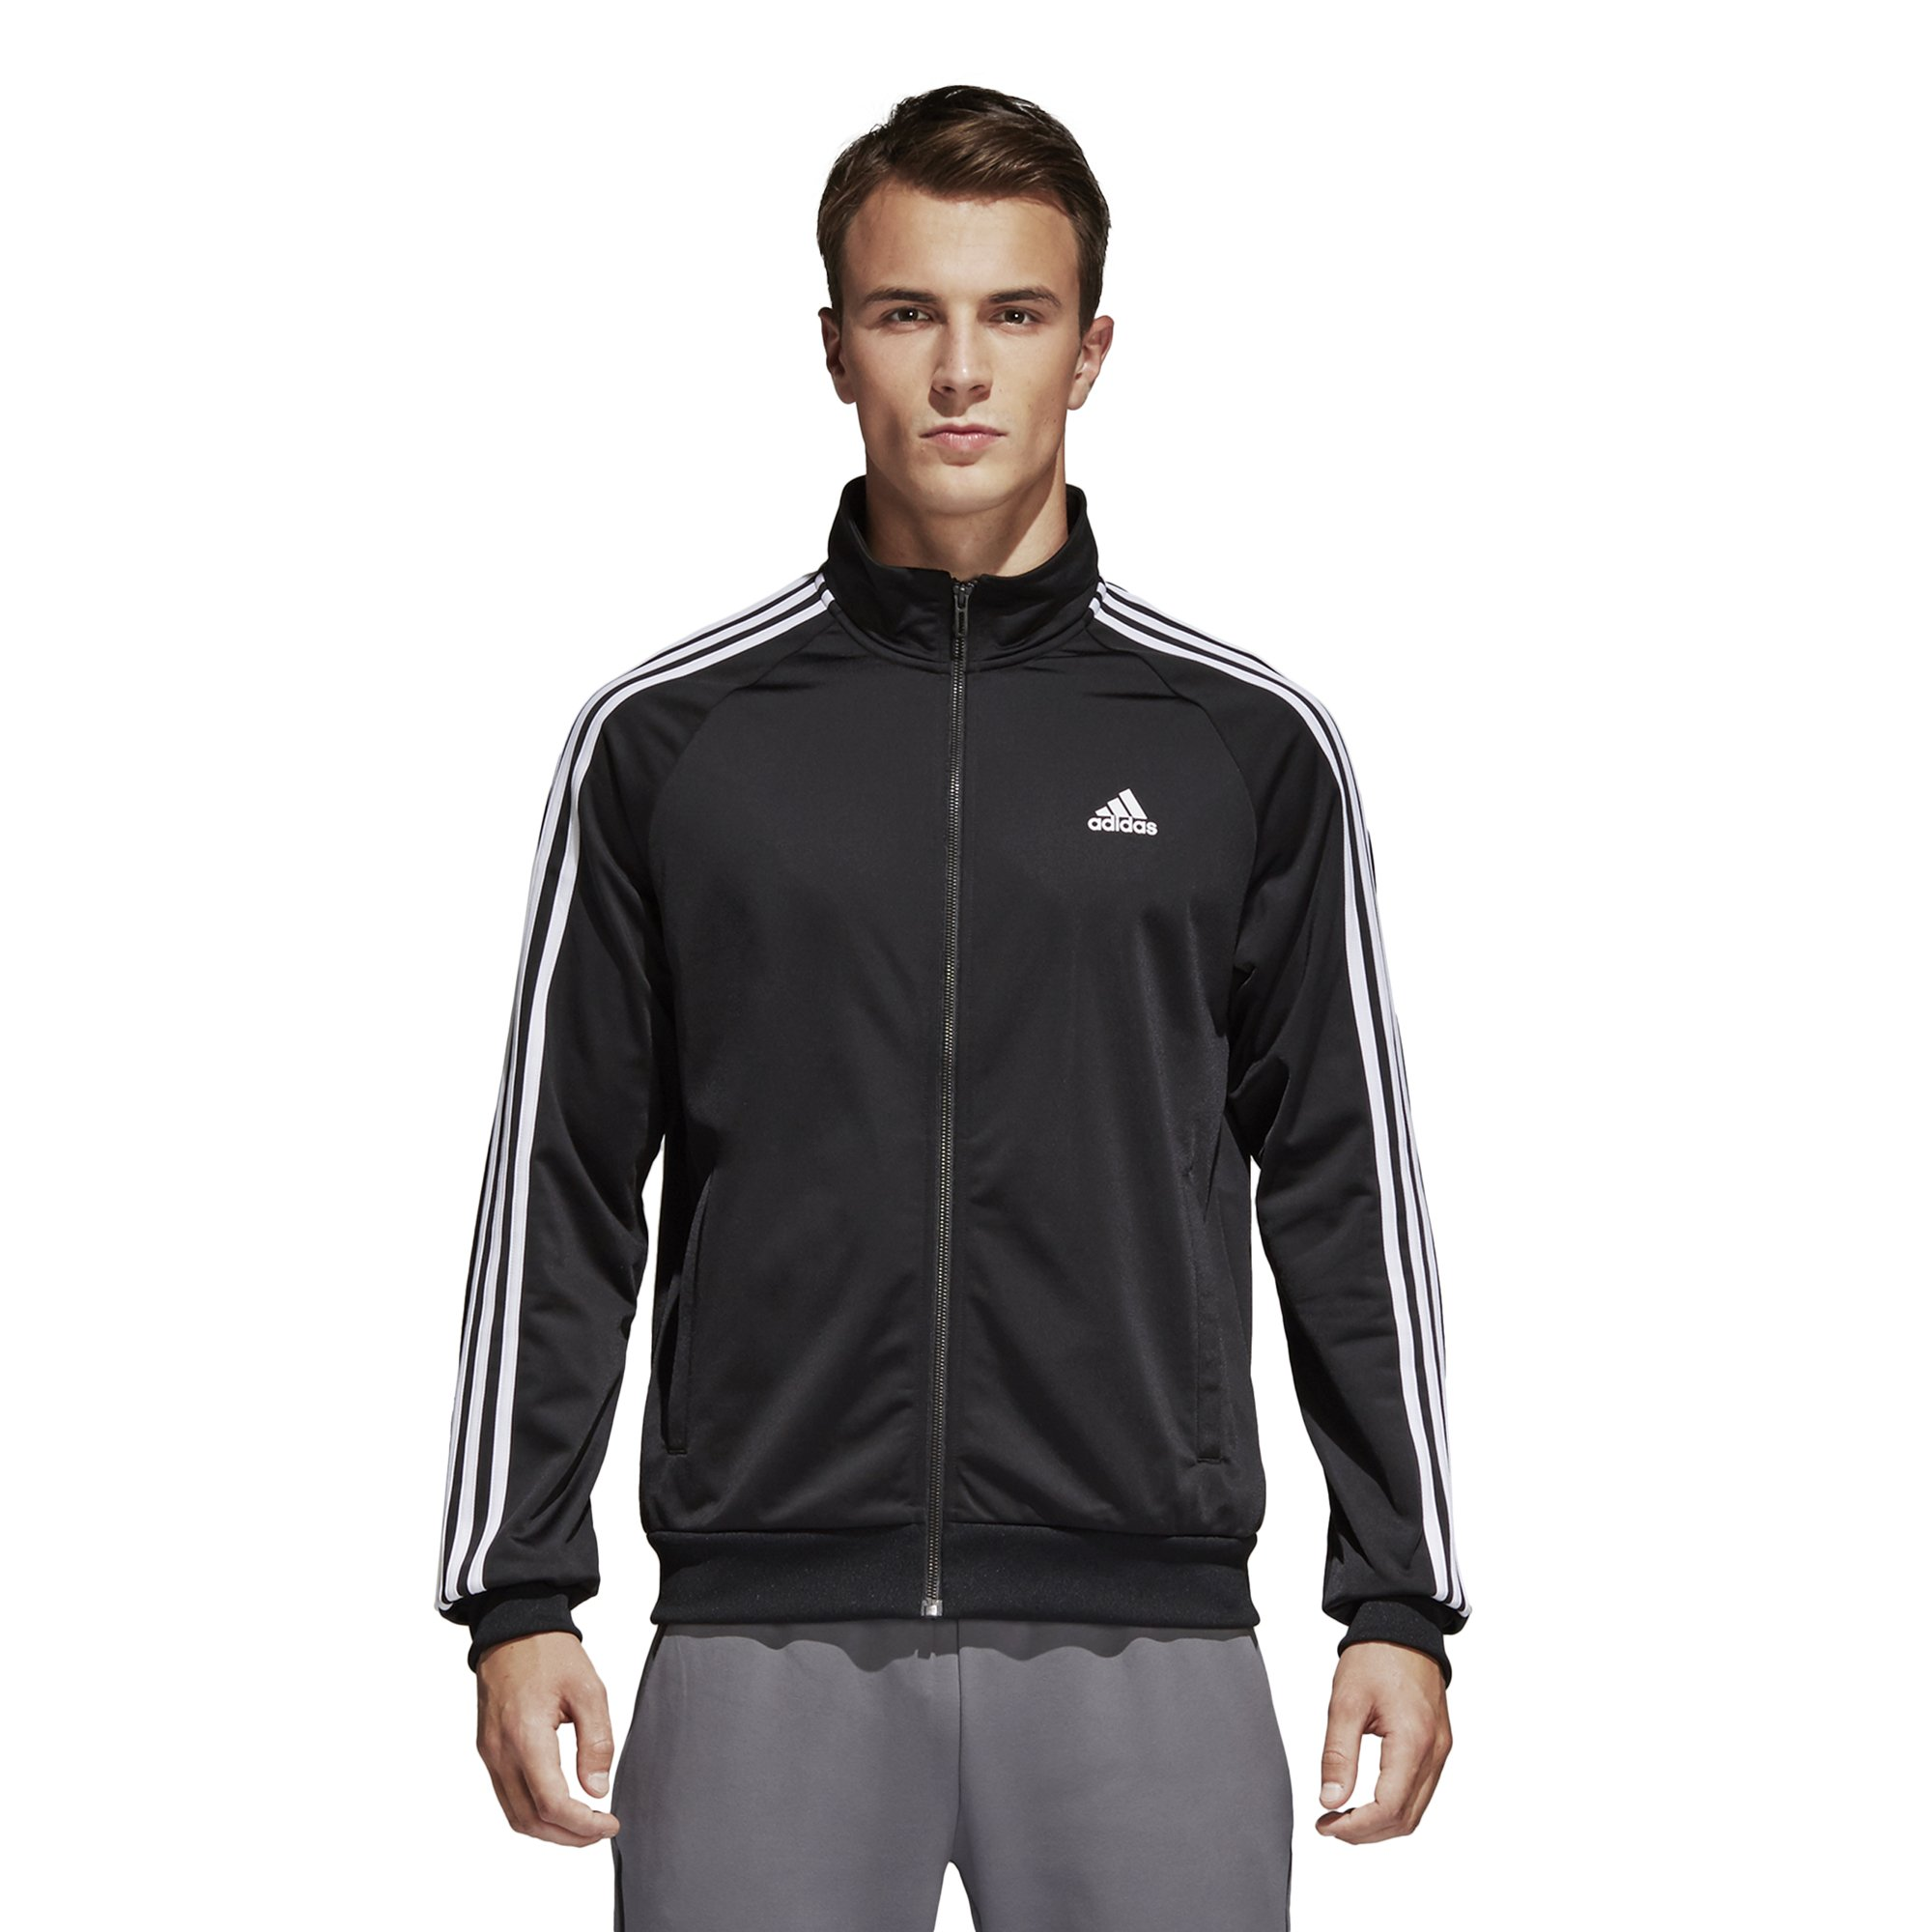 adidas Men's Essentials 3-Stripe Tricot Track Jacket, Black/White, X-Large by adidas